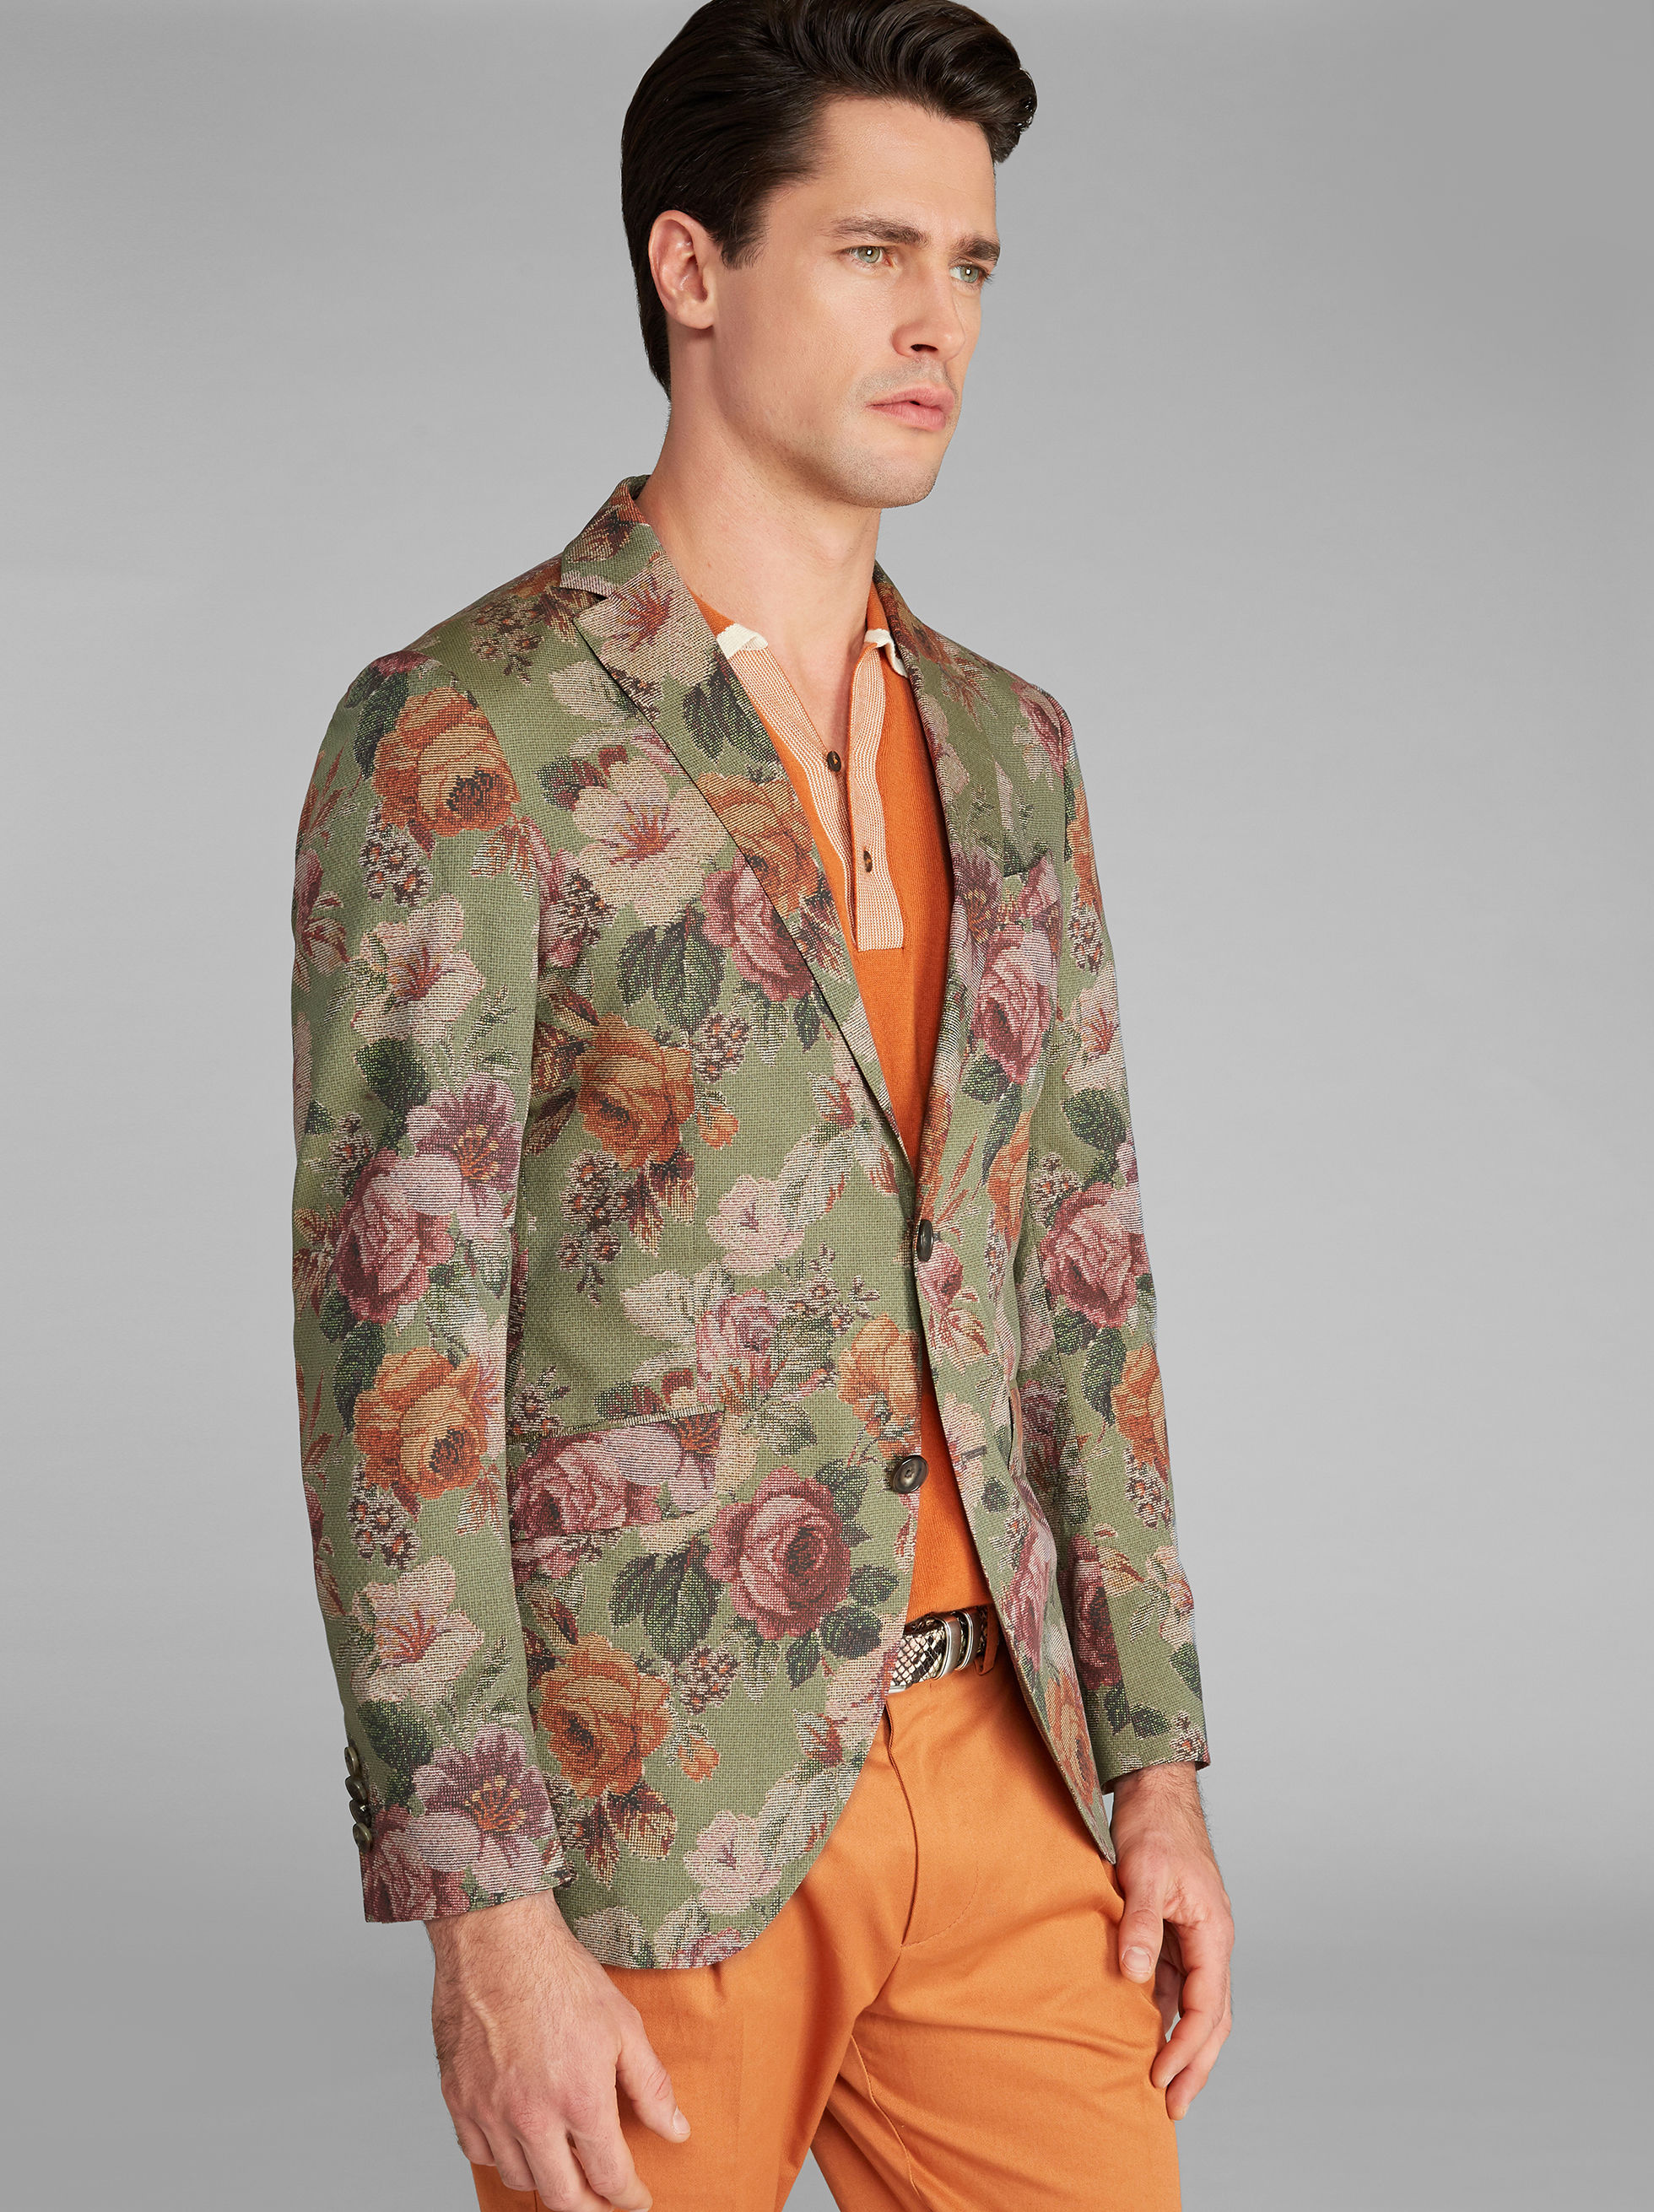 SUPERLEGGERA ROSE-PRINT JACKET